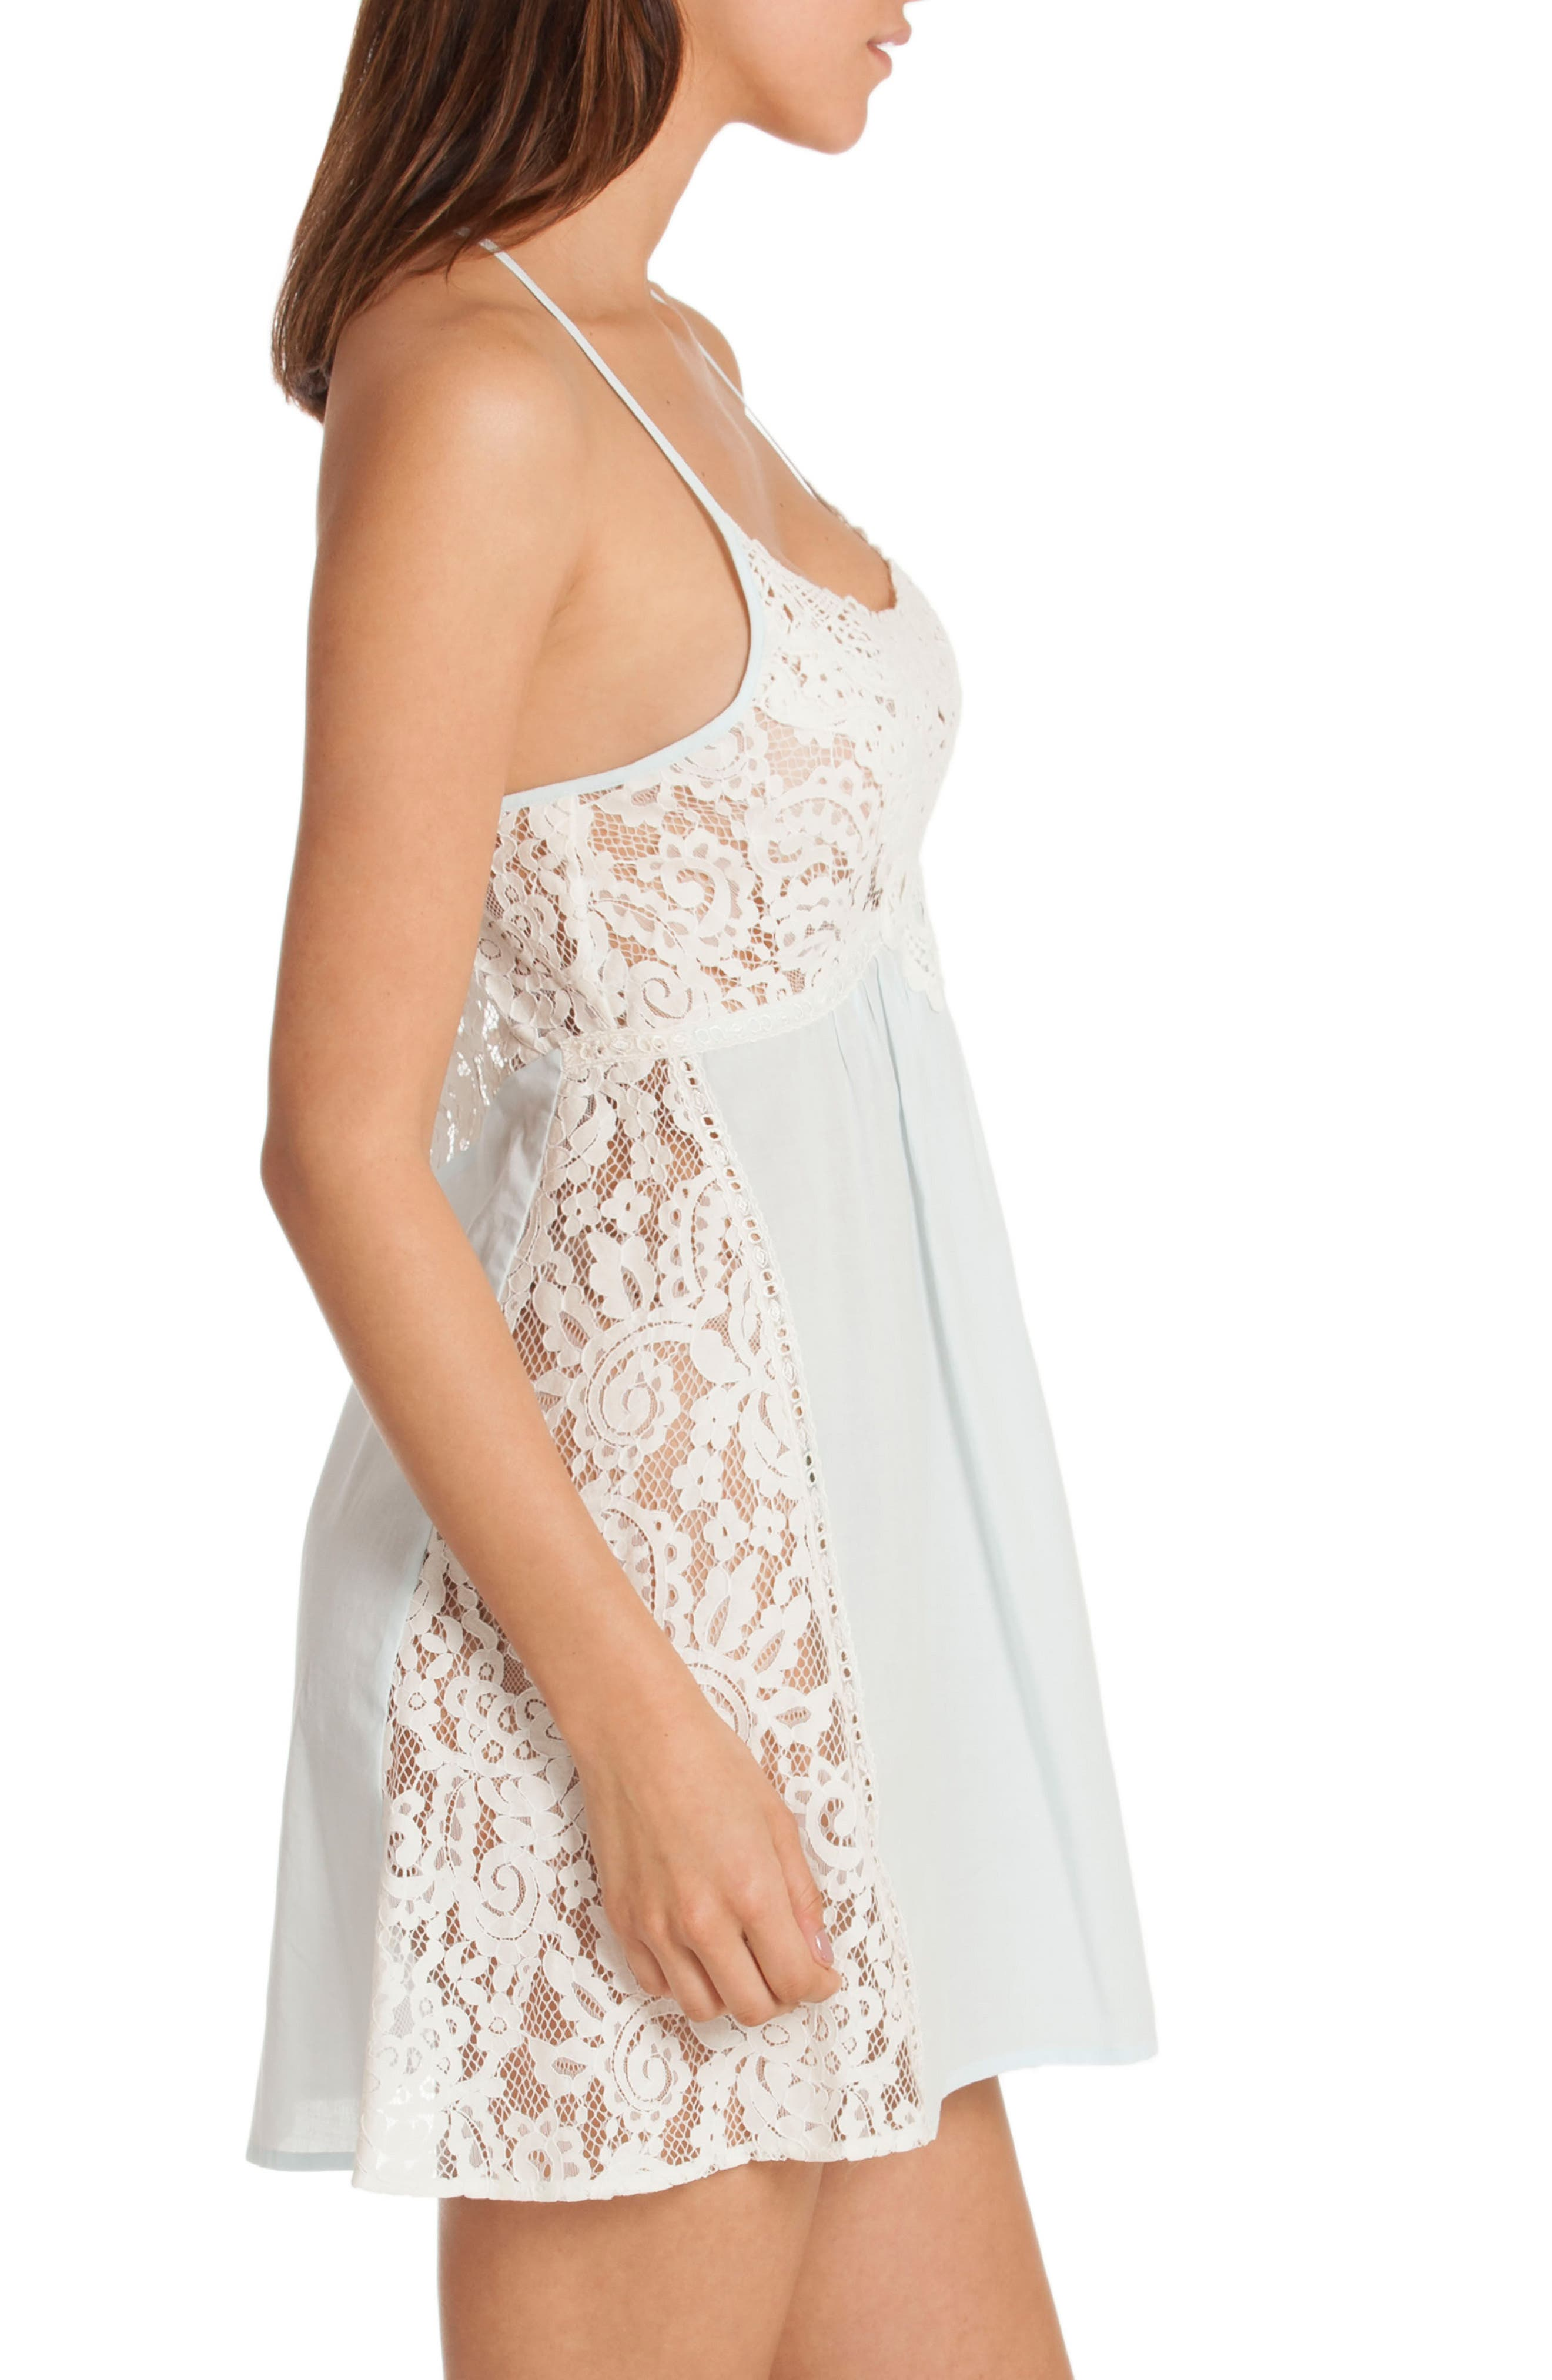 Lace Chemise,                             Alternate thumbnail 3, color,                             Skyfall/ Beige